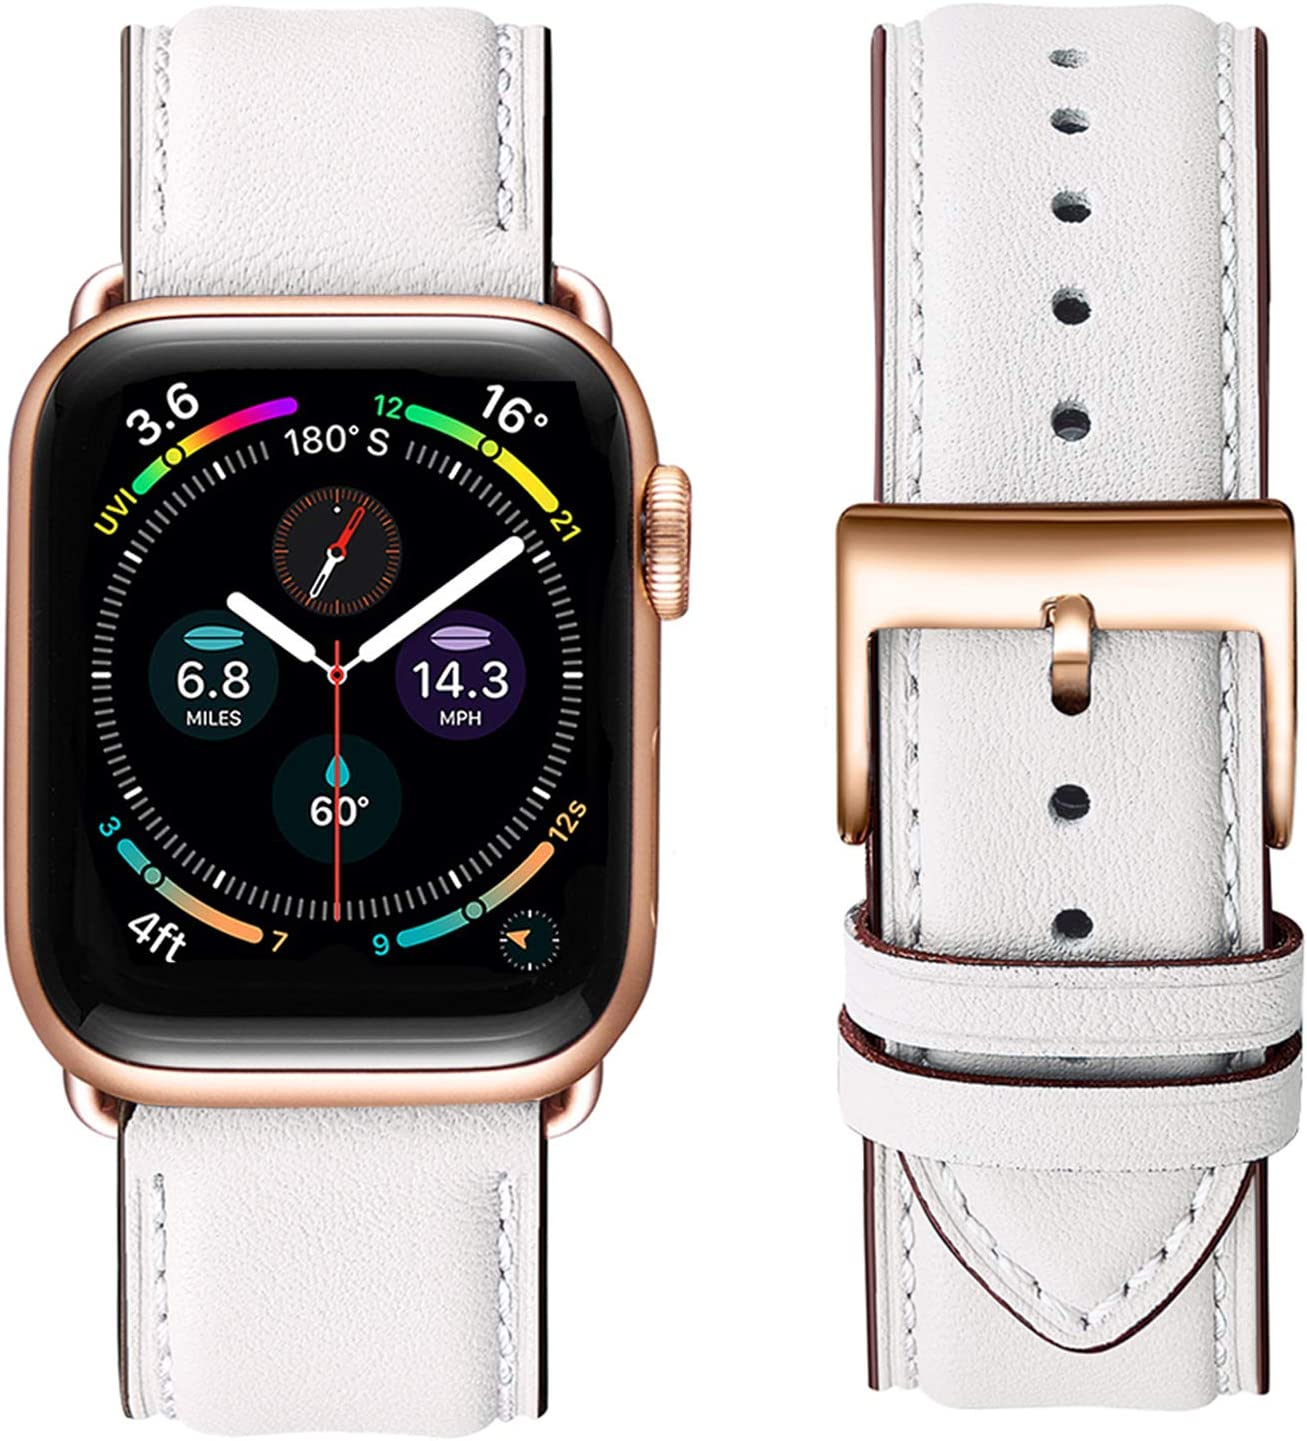 OMIU Square Bands Compatible for Apple Watch 38mm 40mm 42mm 44mm, Genuine Leather Replacement Band Compatible with Apple Watch Series 6/5/4/3/2/1, iWatch SE(White/Rose Gold Connector, 38mm 40mm)